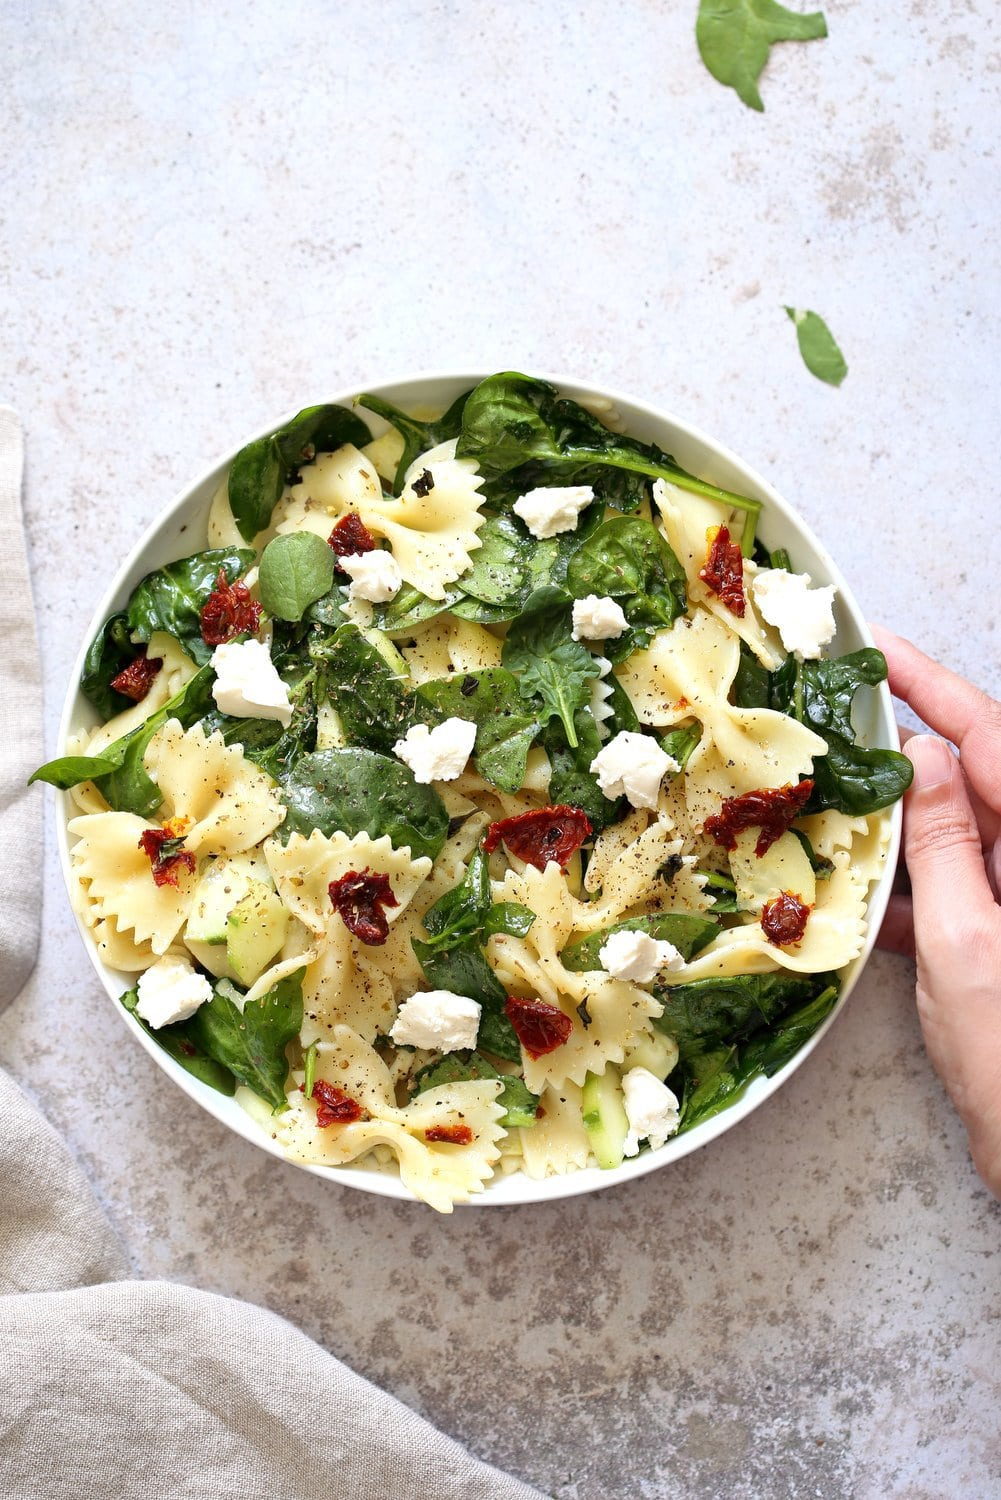 40 delicious & healthy vegan salad recipes picture of pasta salad from recipe roundup